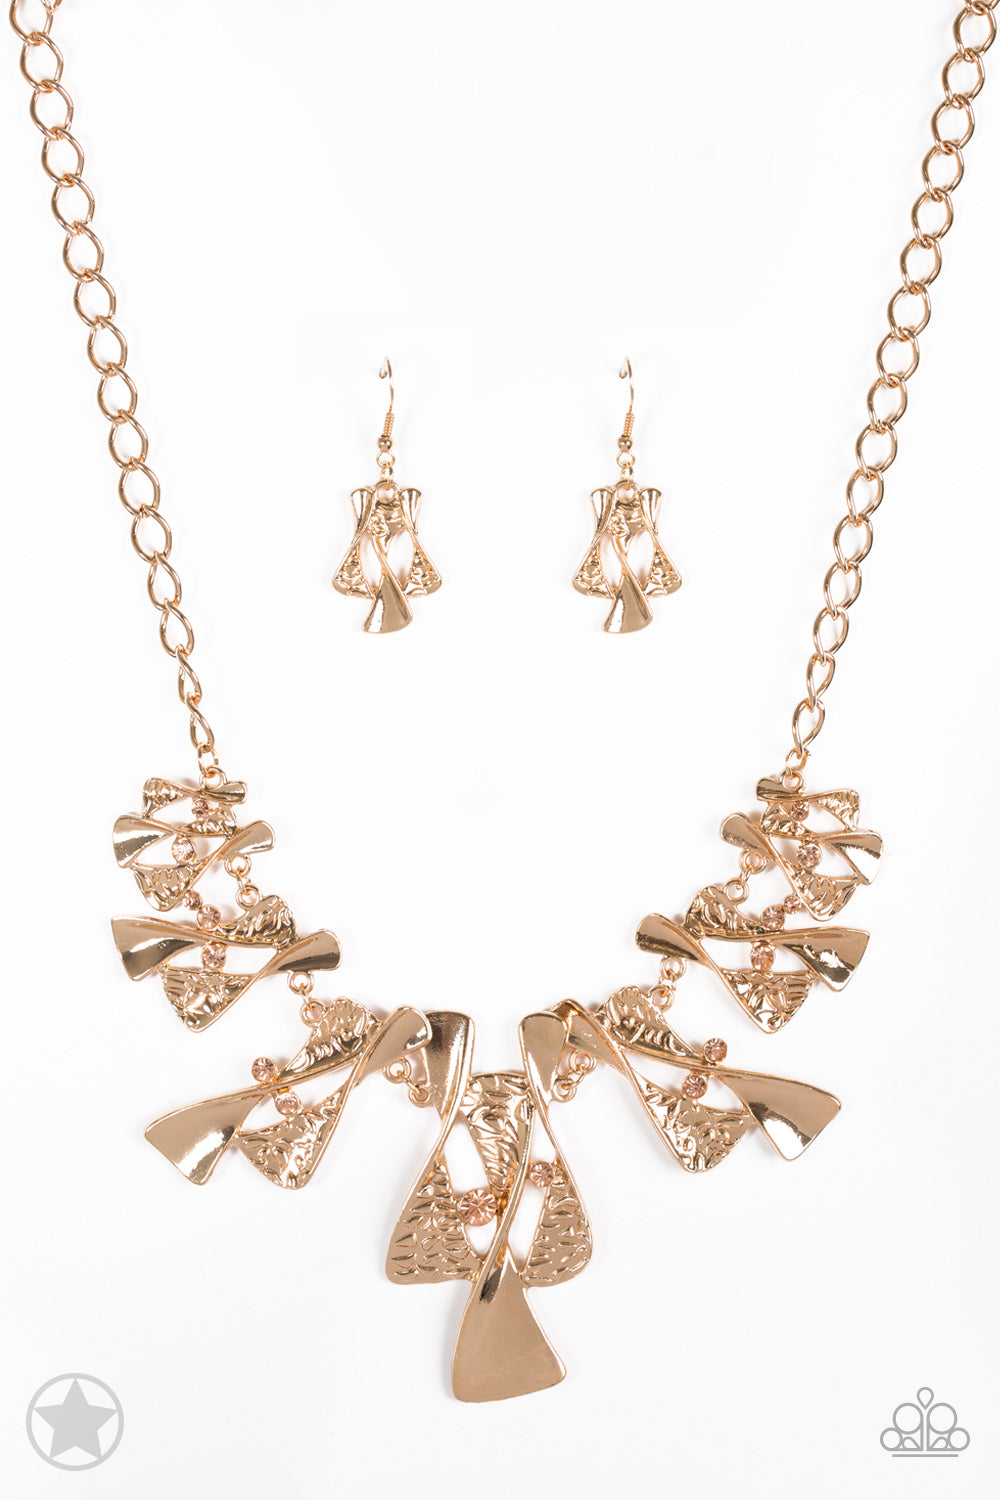 Paparazzi Accessories - The Sands of Time - Gold Necklace Set - JMJ Jewelry Collection